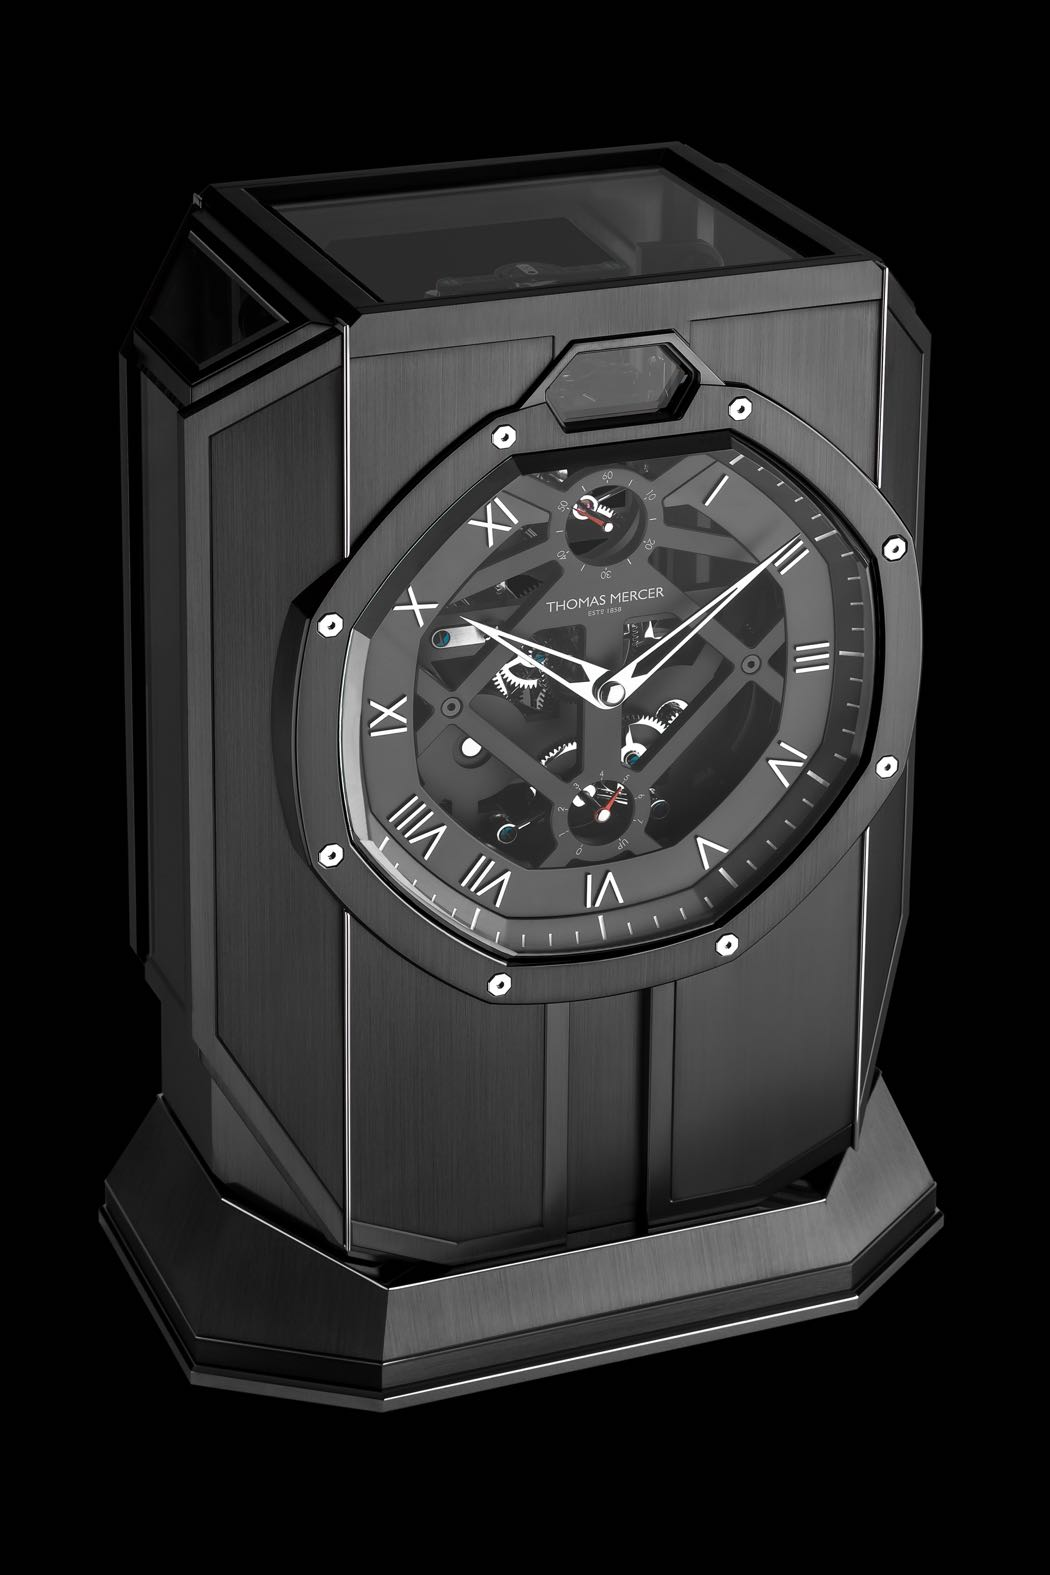 Thomas Mercer Ultra-Limited Timepieces – The Ultimate Luxury